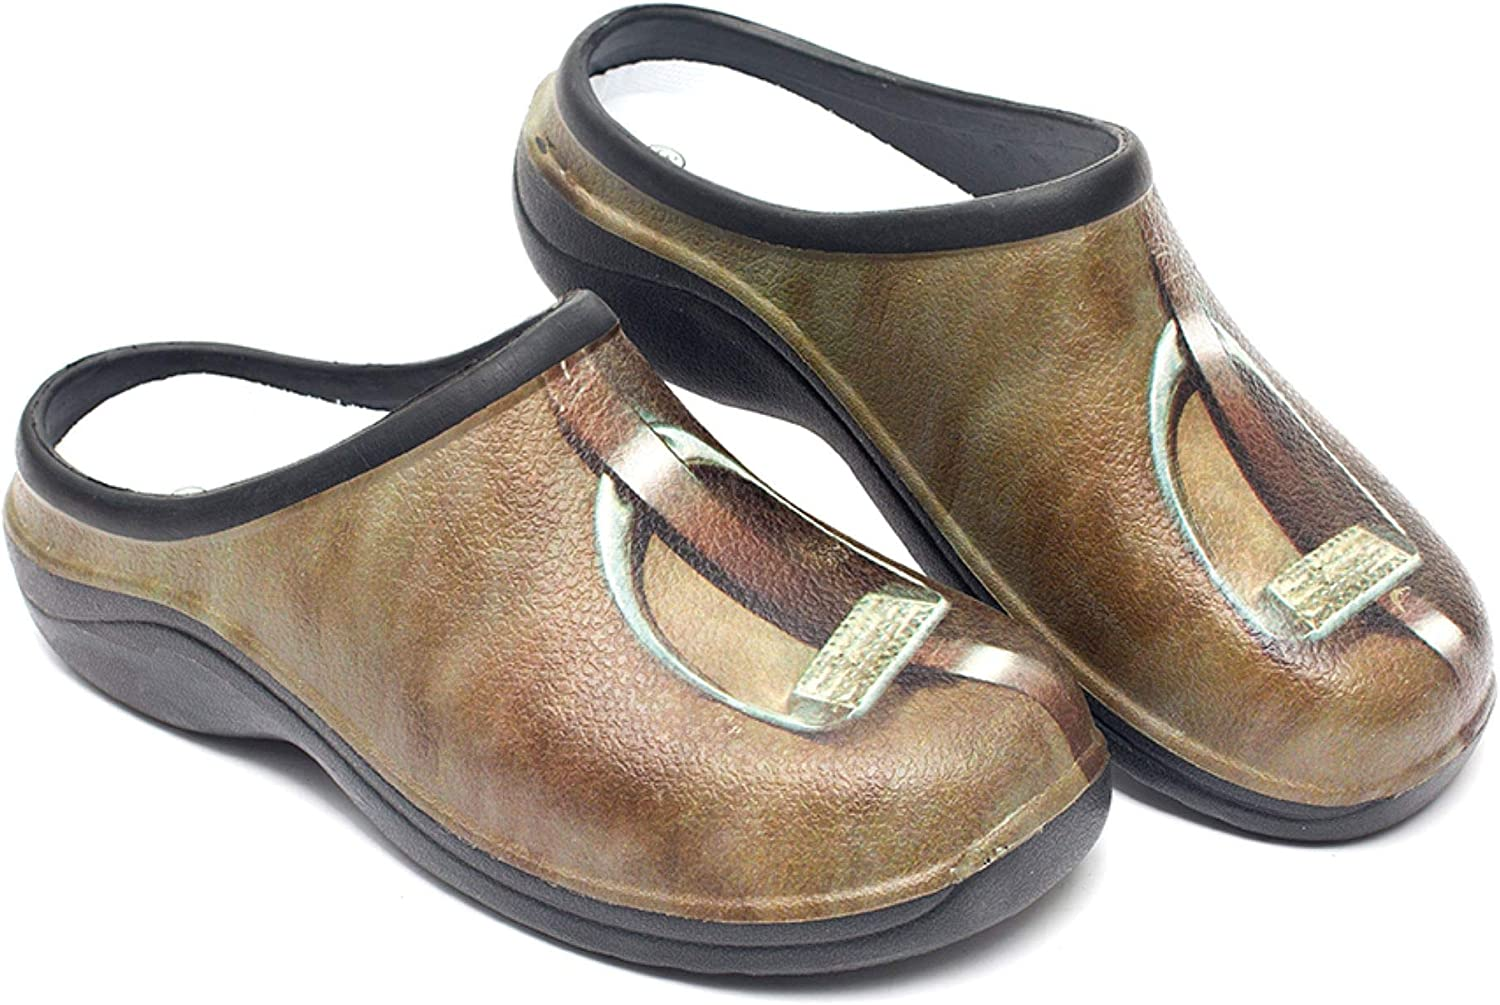 Backdoorshoes Waterproof Women's Premium Garden Shoes with Arch Support-Horse Print